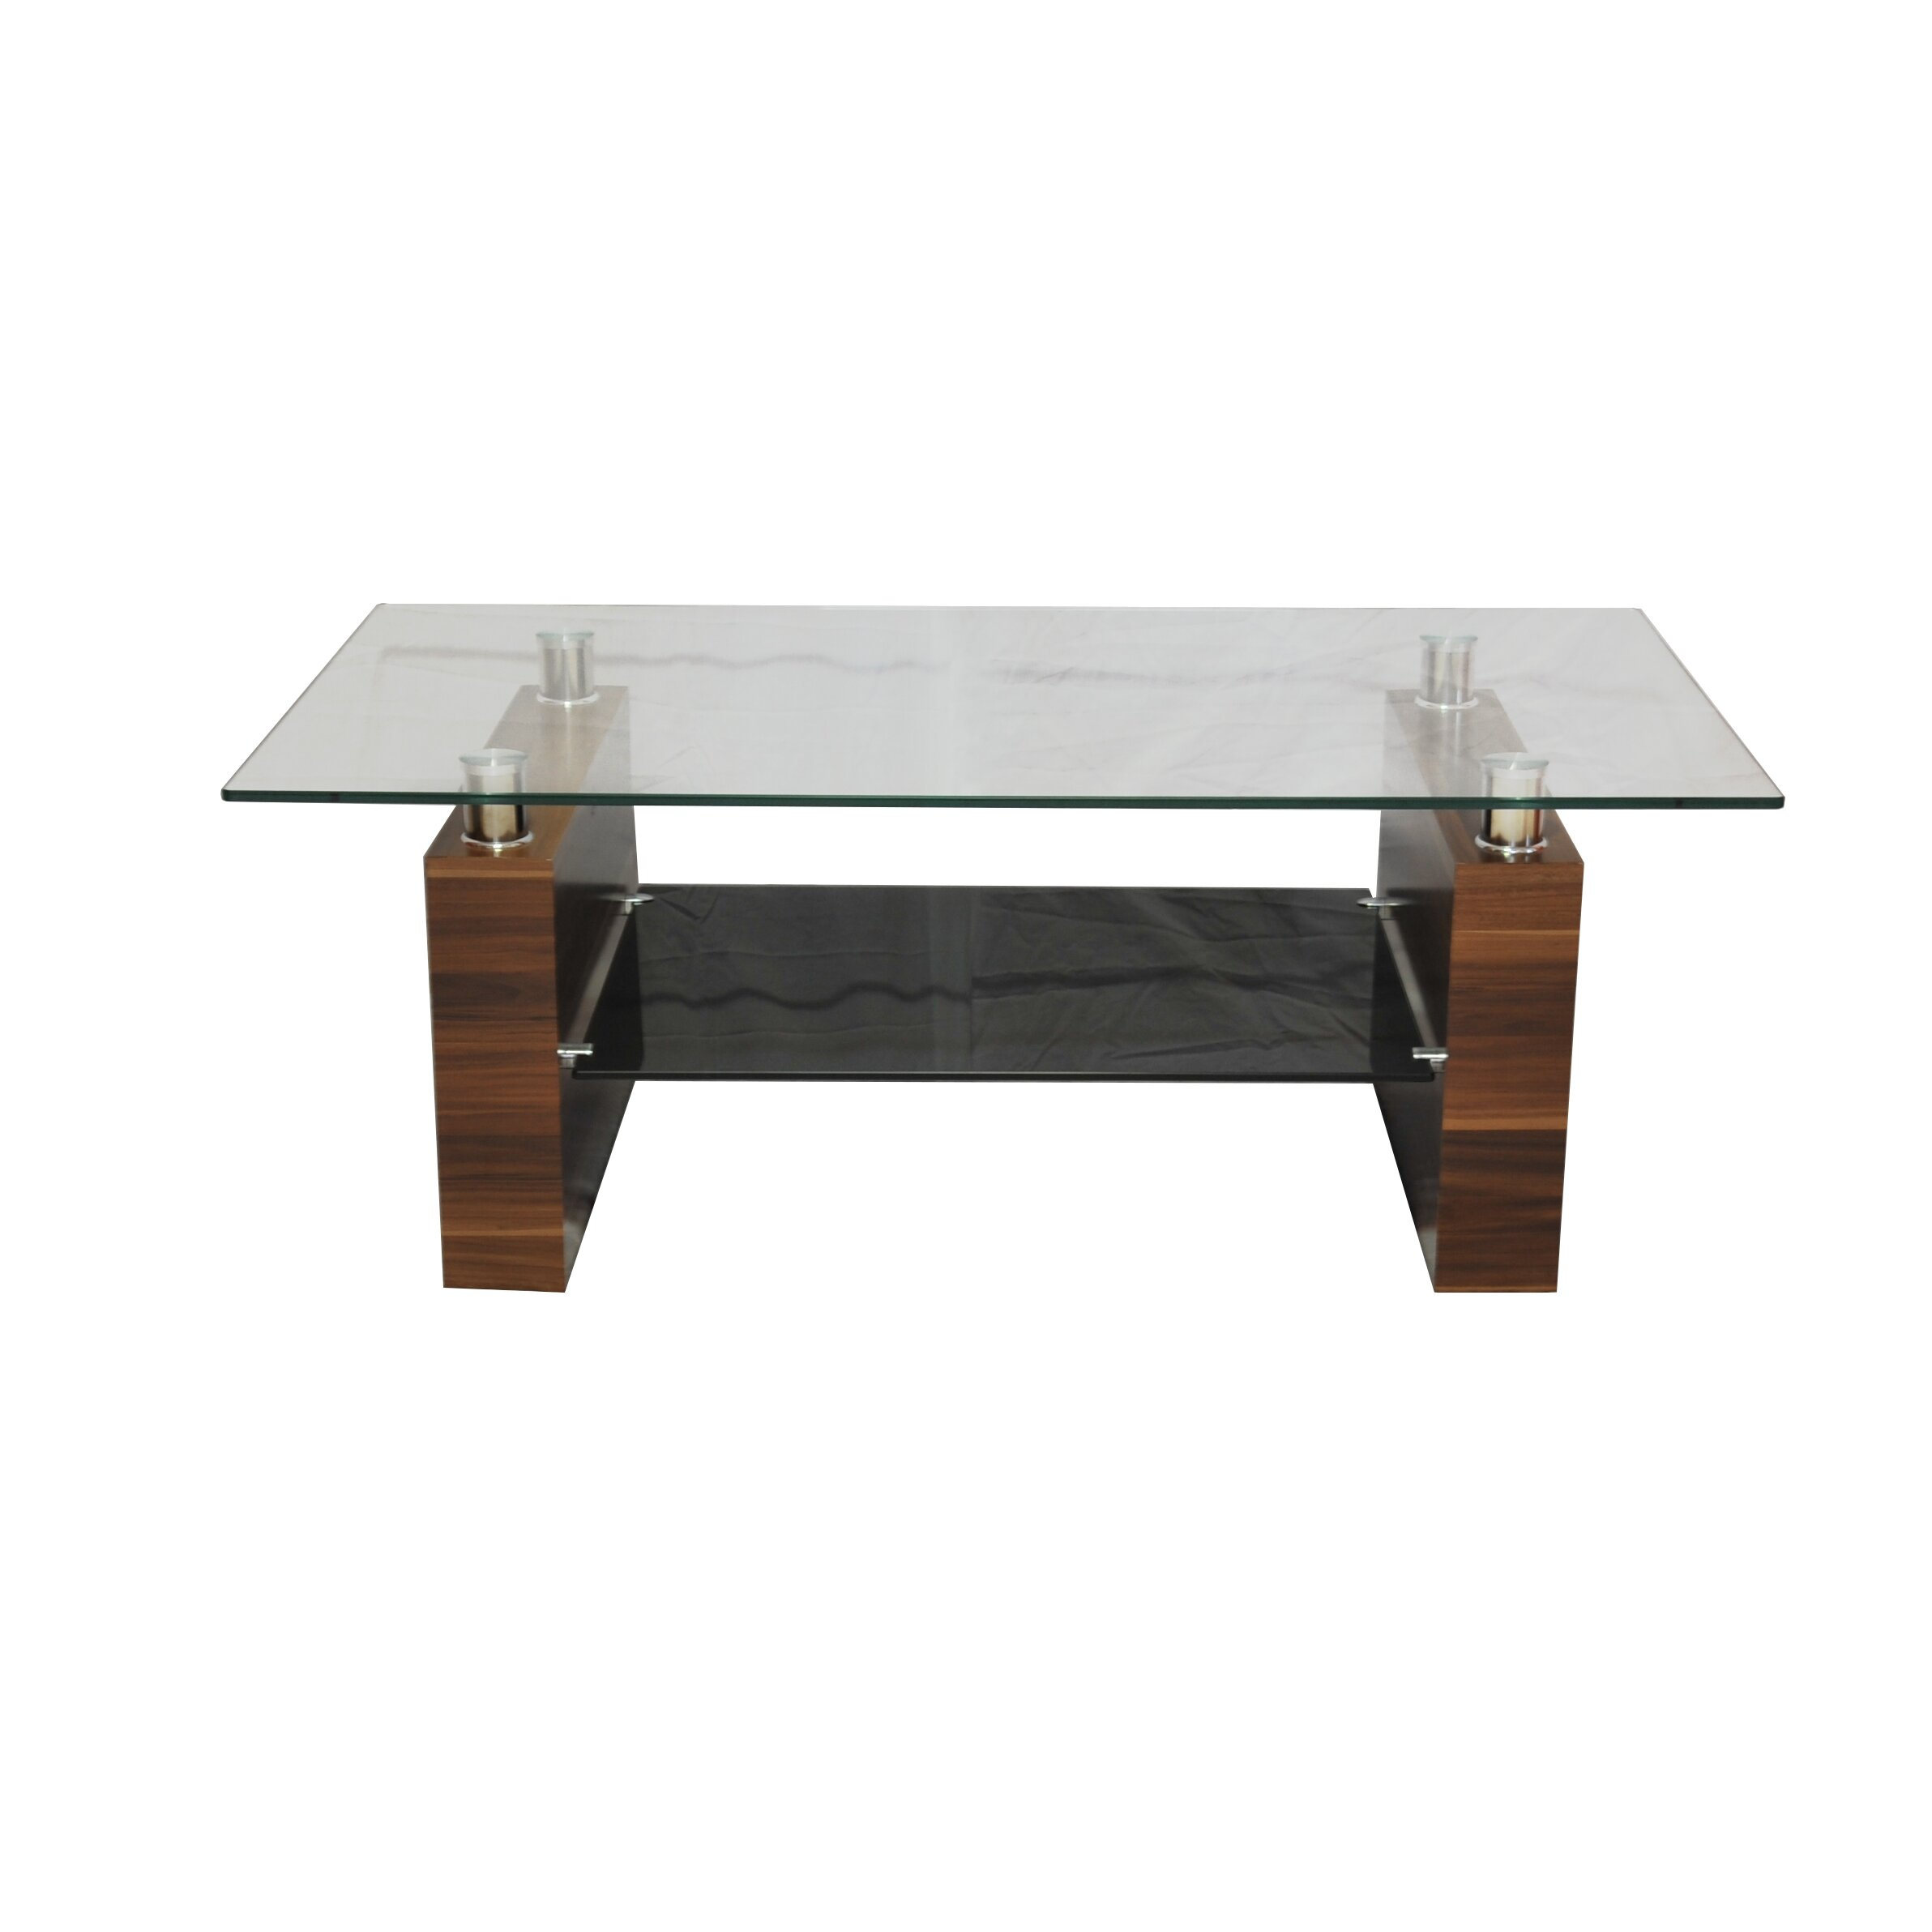 40 Square Coffee Table Images Consider The